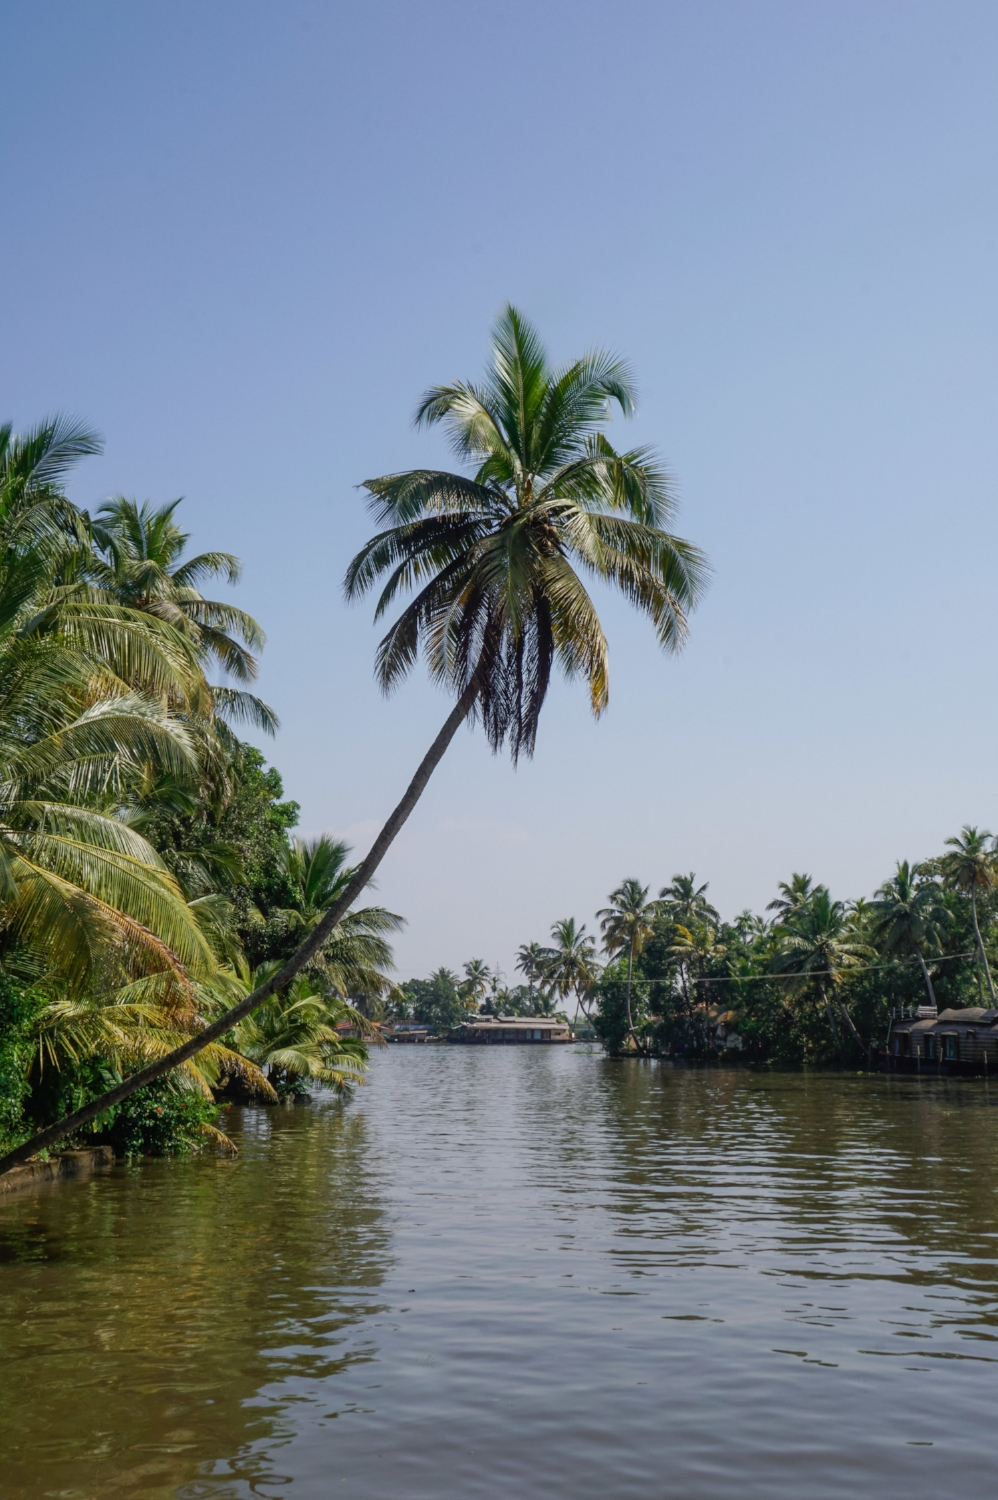 curio.trips.india.kerala.backwaters.palmtree-2.jpg